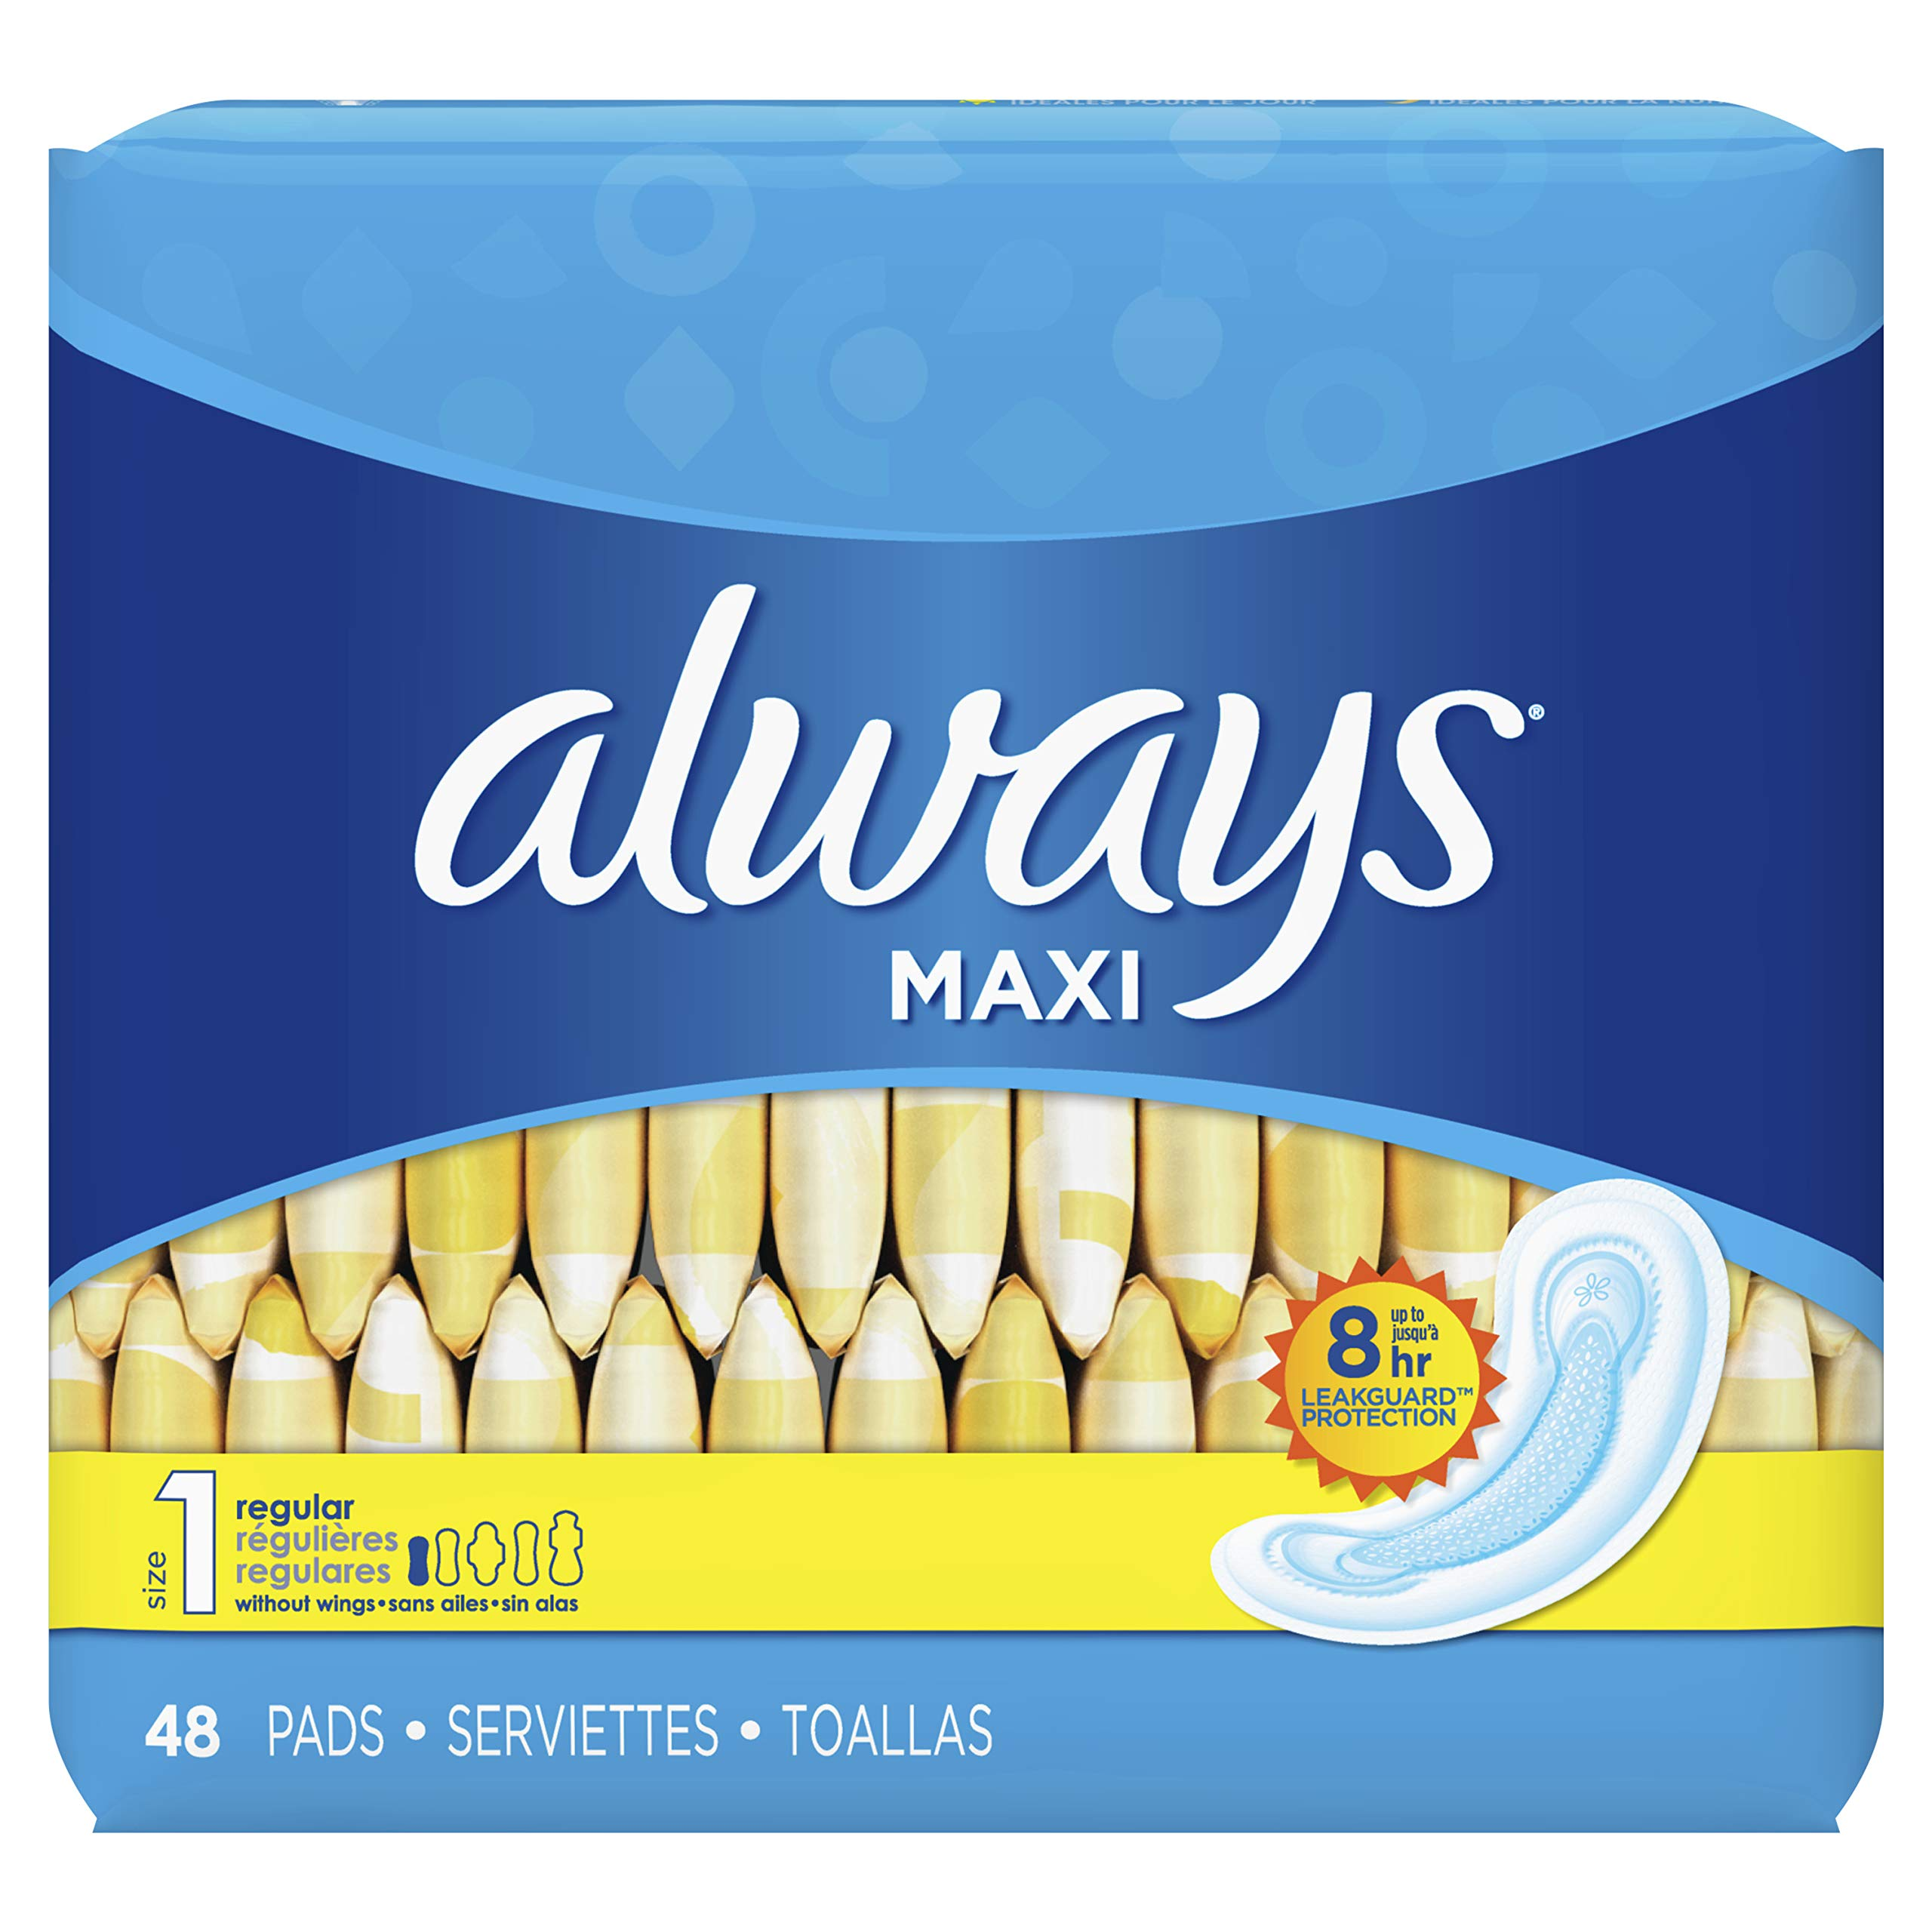 Always Maxi Feminine Pads for Women, Size 1, Regular Absorbency, Unscented, 48 Count - Pack of 6 (288 Count Total) (Package May Vary) by Always